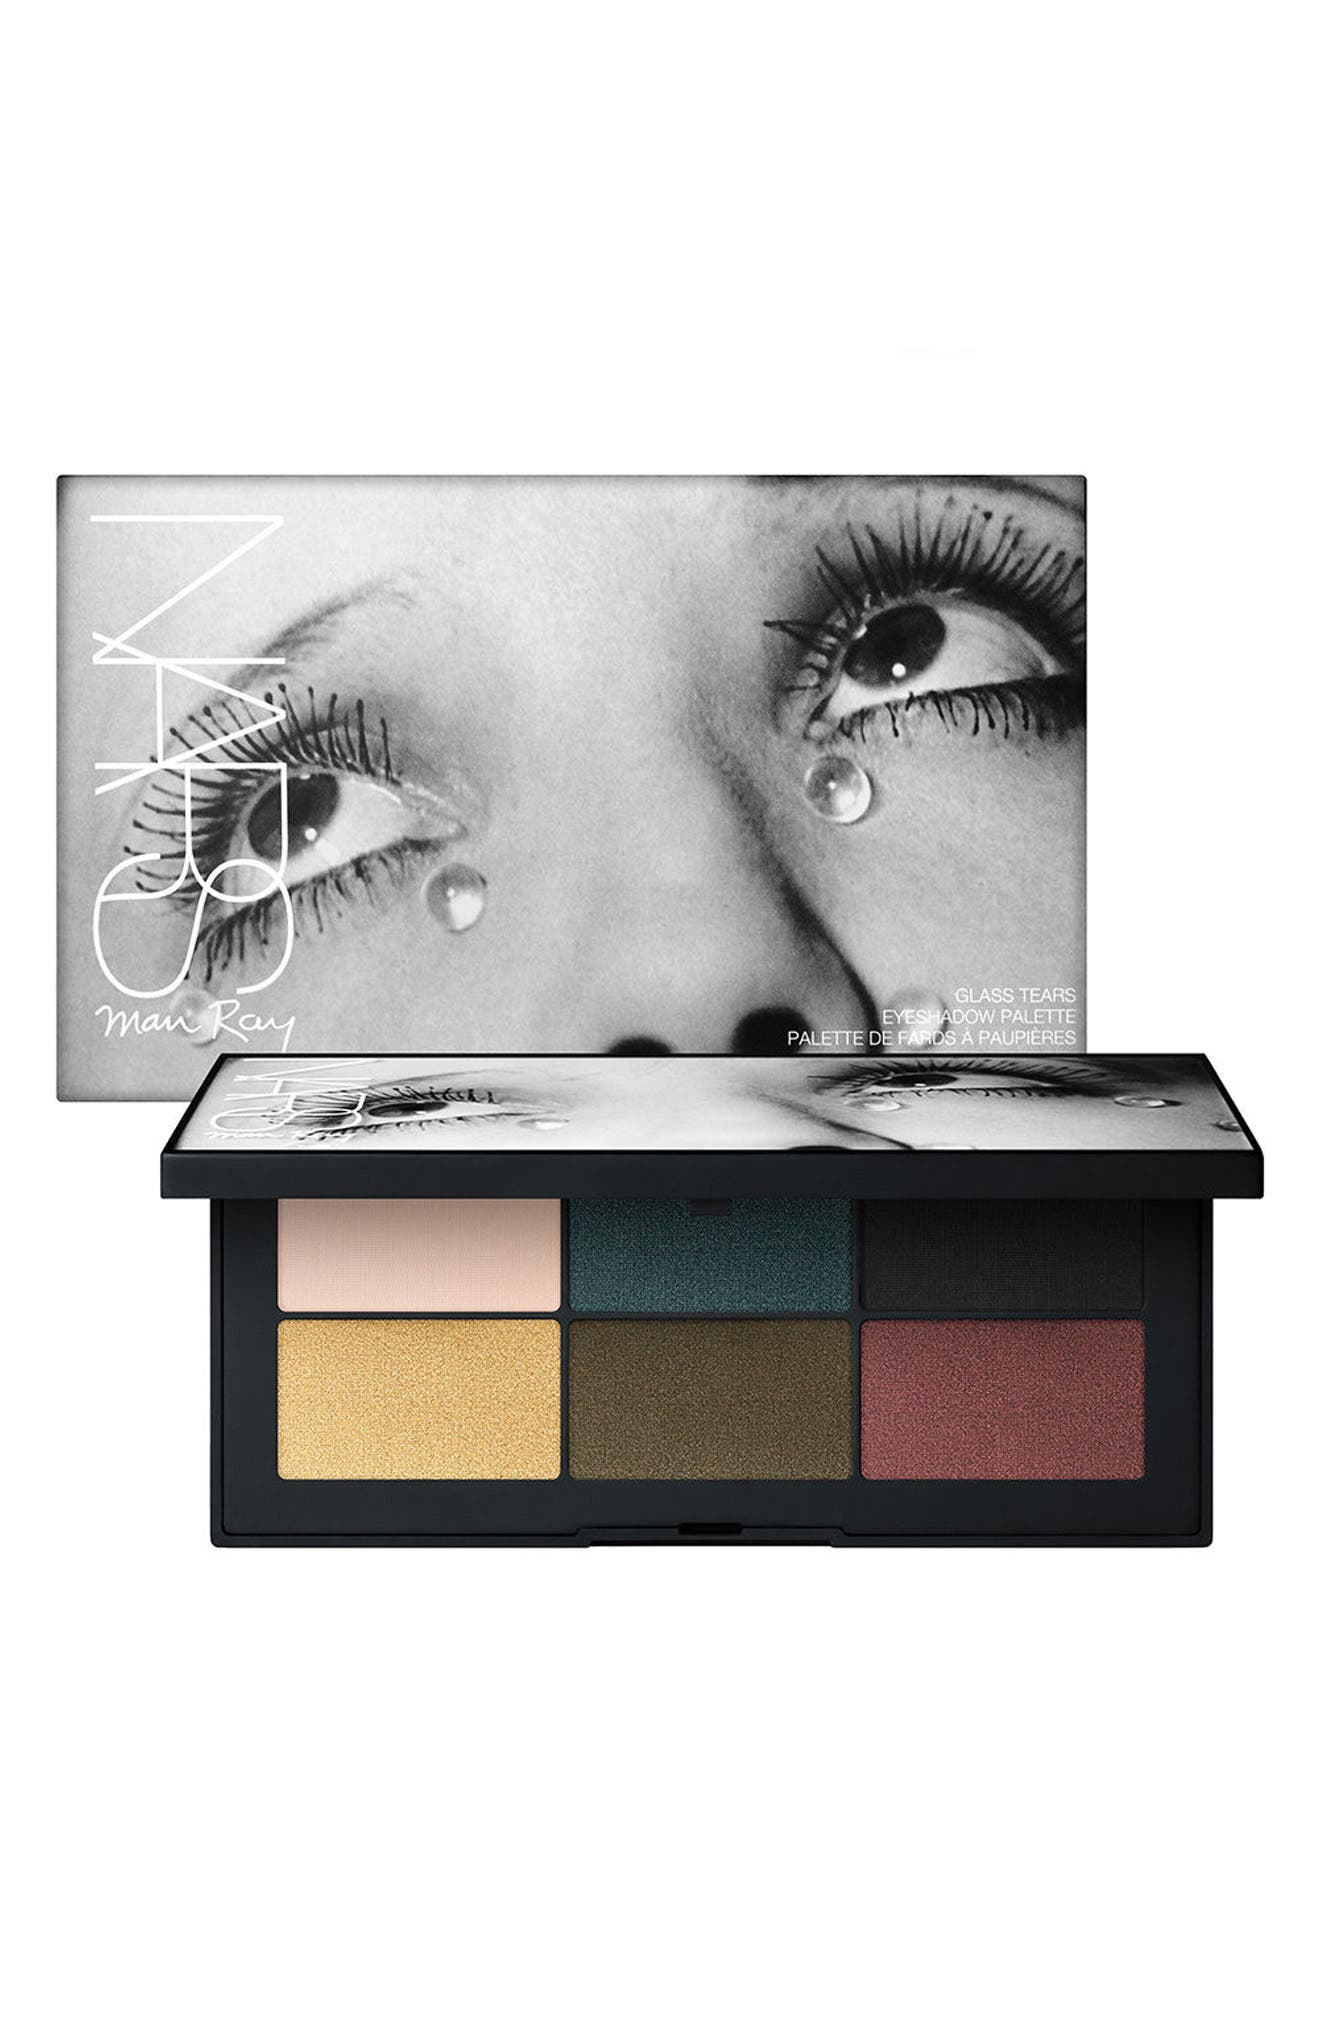 Man Ray Glass Tears Eyeshadow Palette,                             Main thumbnail 1, color,                             No Color